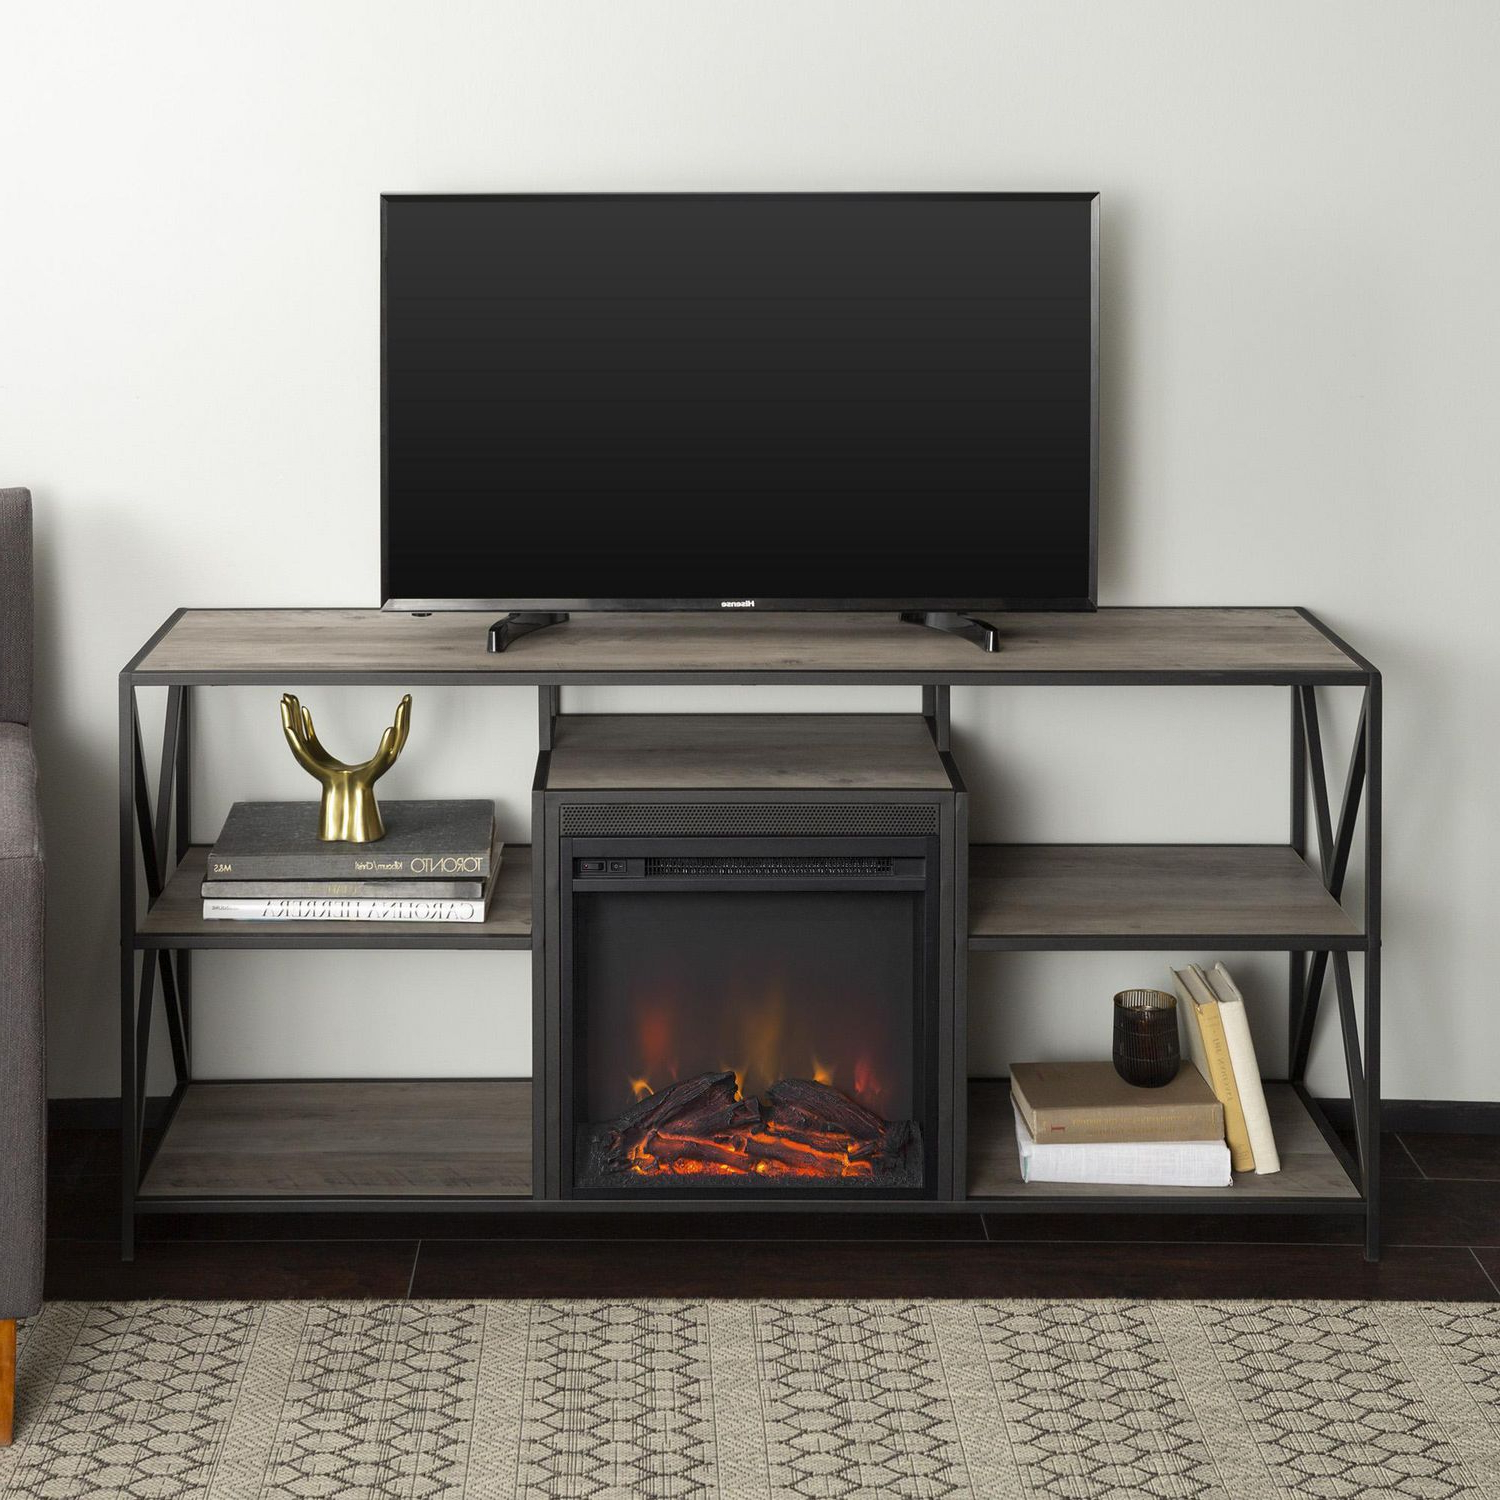 Manor Park Modern Industrial Fireplace Tv Stand For Tv's Regarding Recent Tv Stands With Led Lights In Multiple Finishes (View 3 of 10)